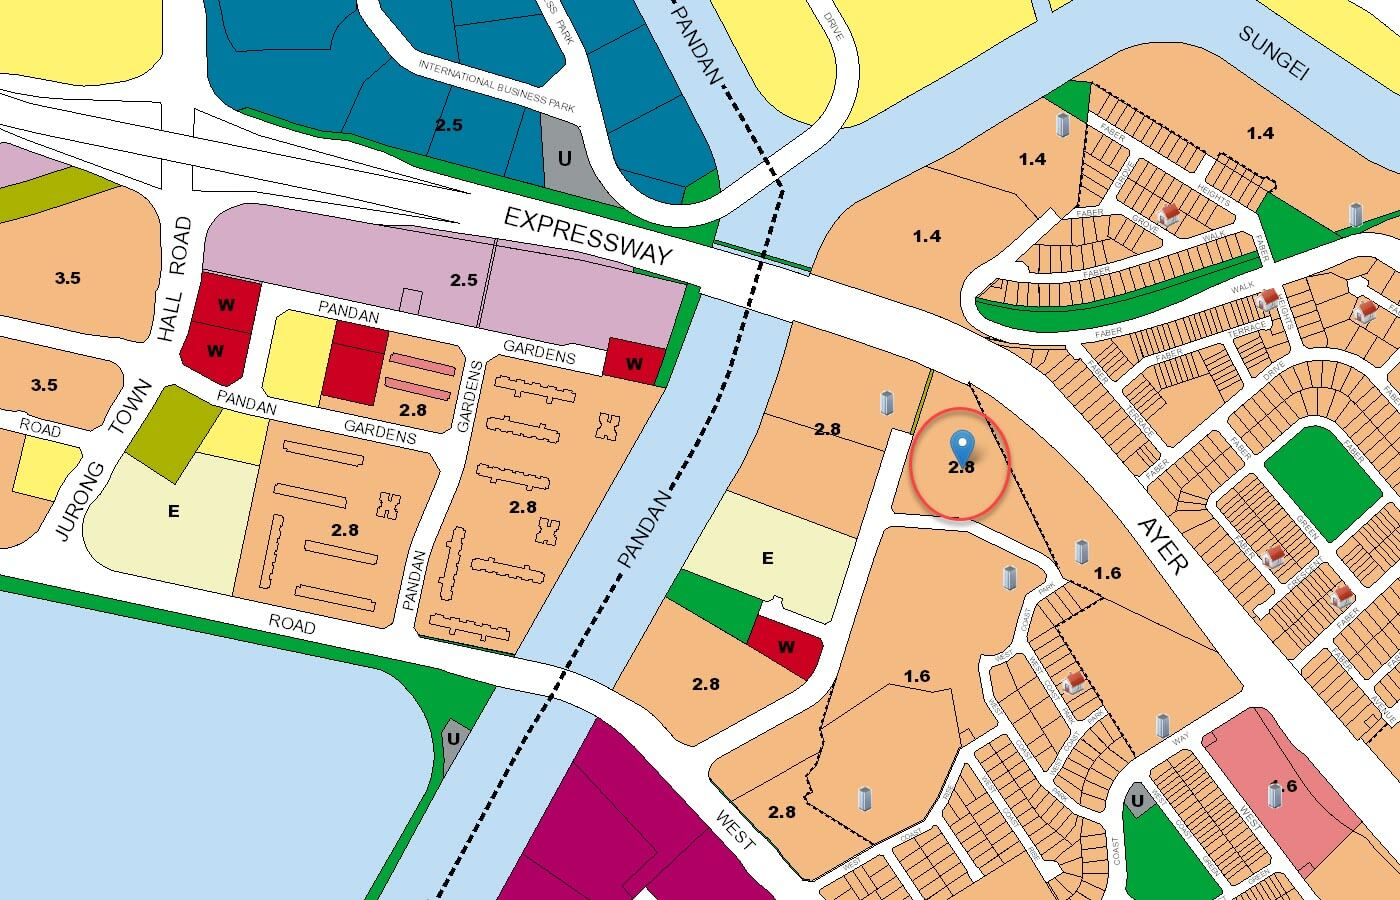 Whistler Grand Condo URA Master Plan Map